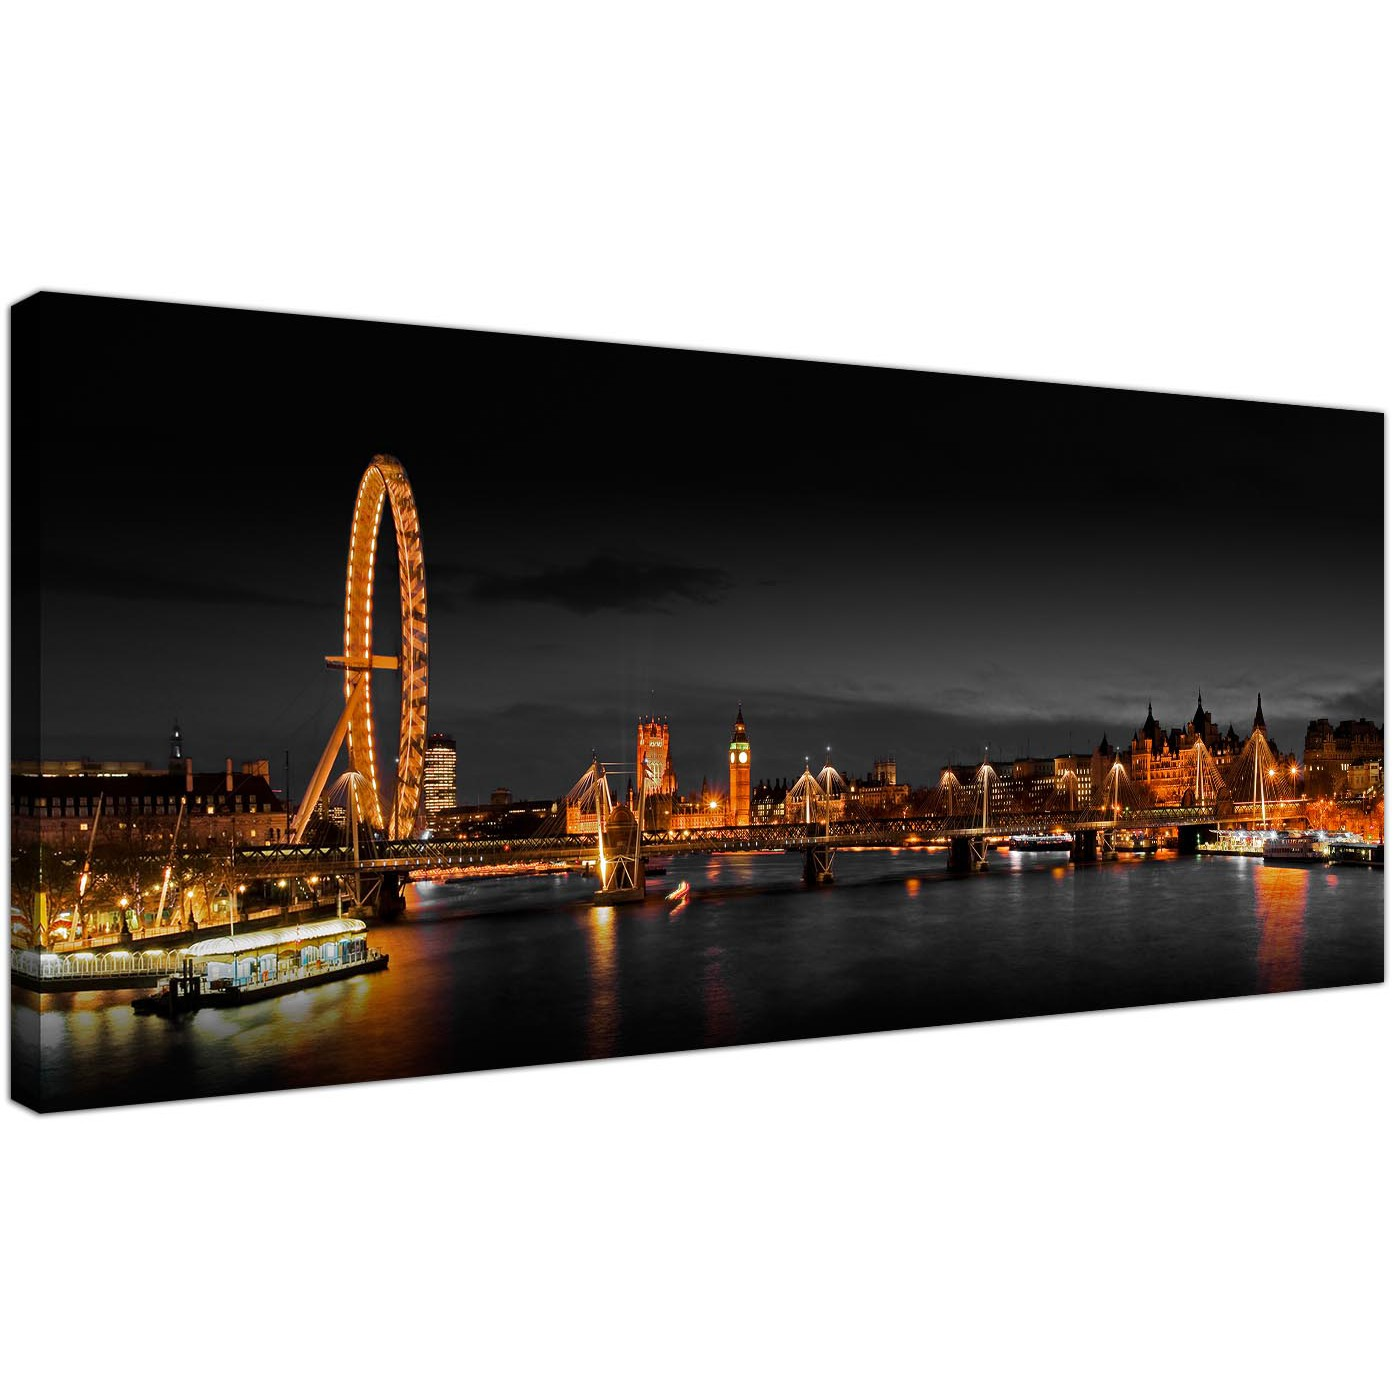 panoramic canvas wall art of london eye at night for your living room